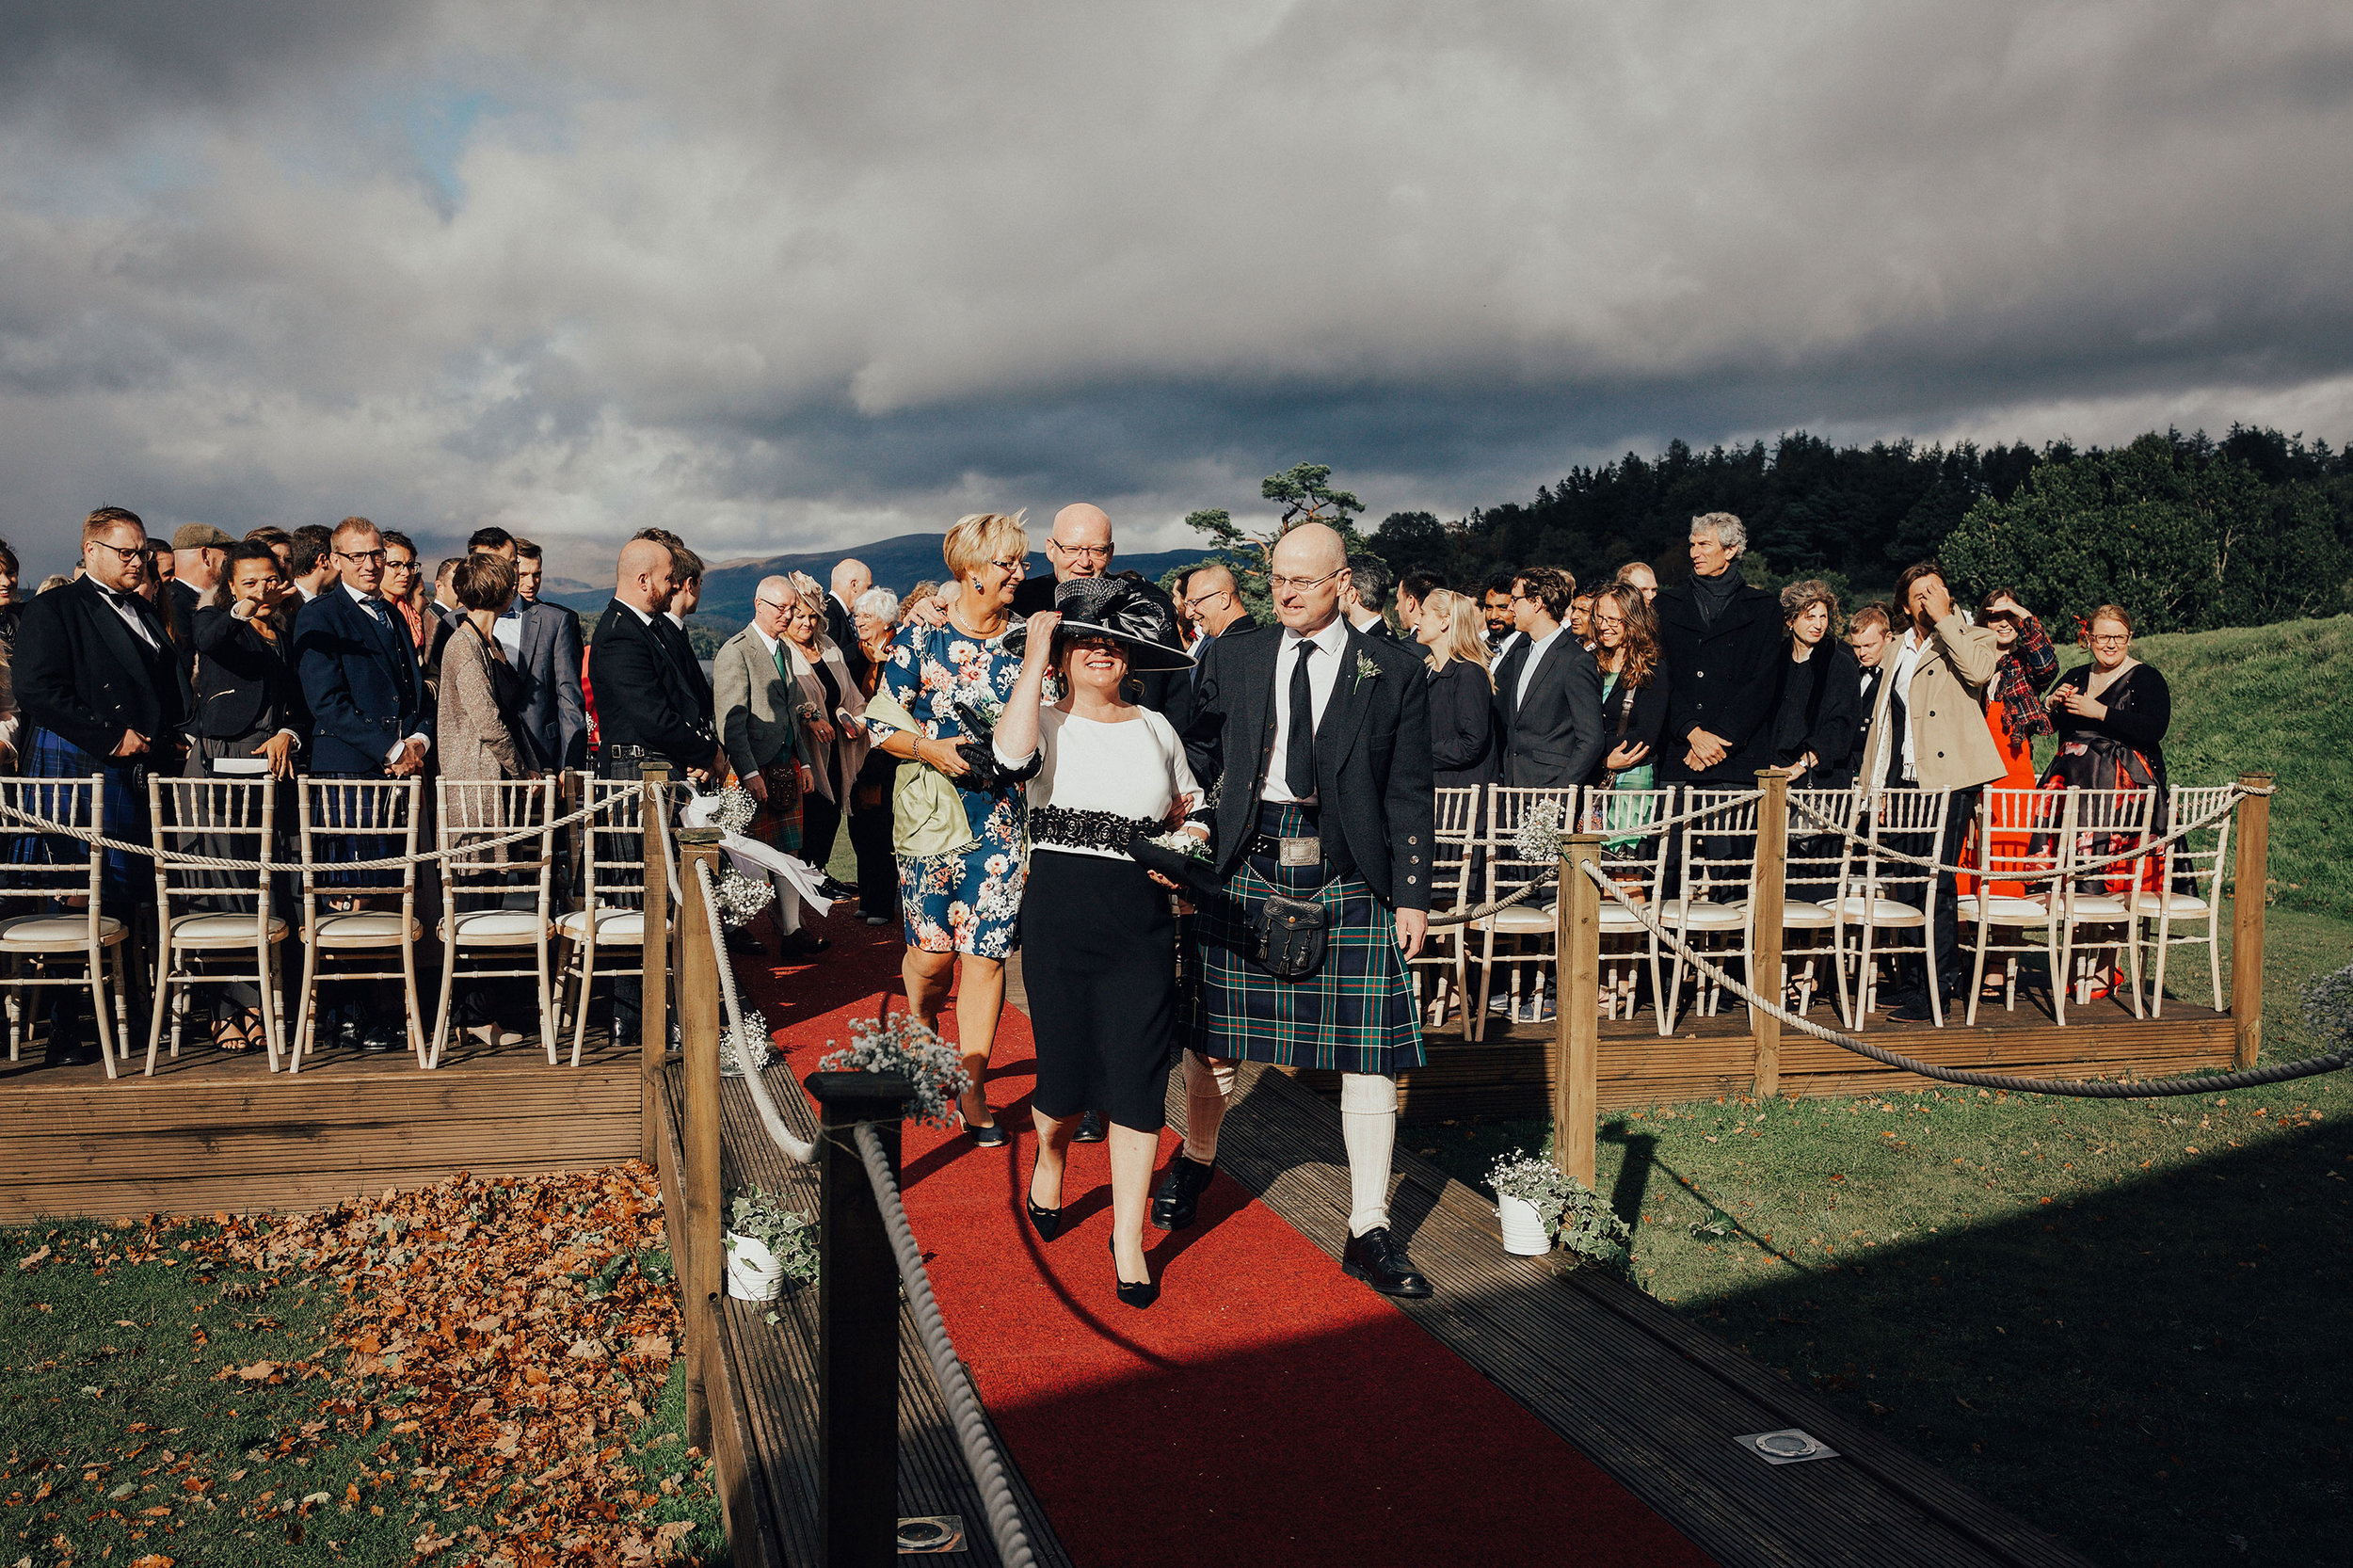 BOTURICH_CASTLE_WEDDING_PHOTOGRAPHER_PJ_PHILLIPS_PHOTOGRAPHY_89.jpg